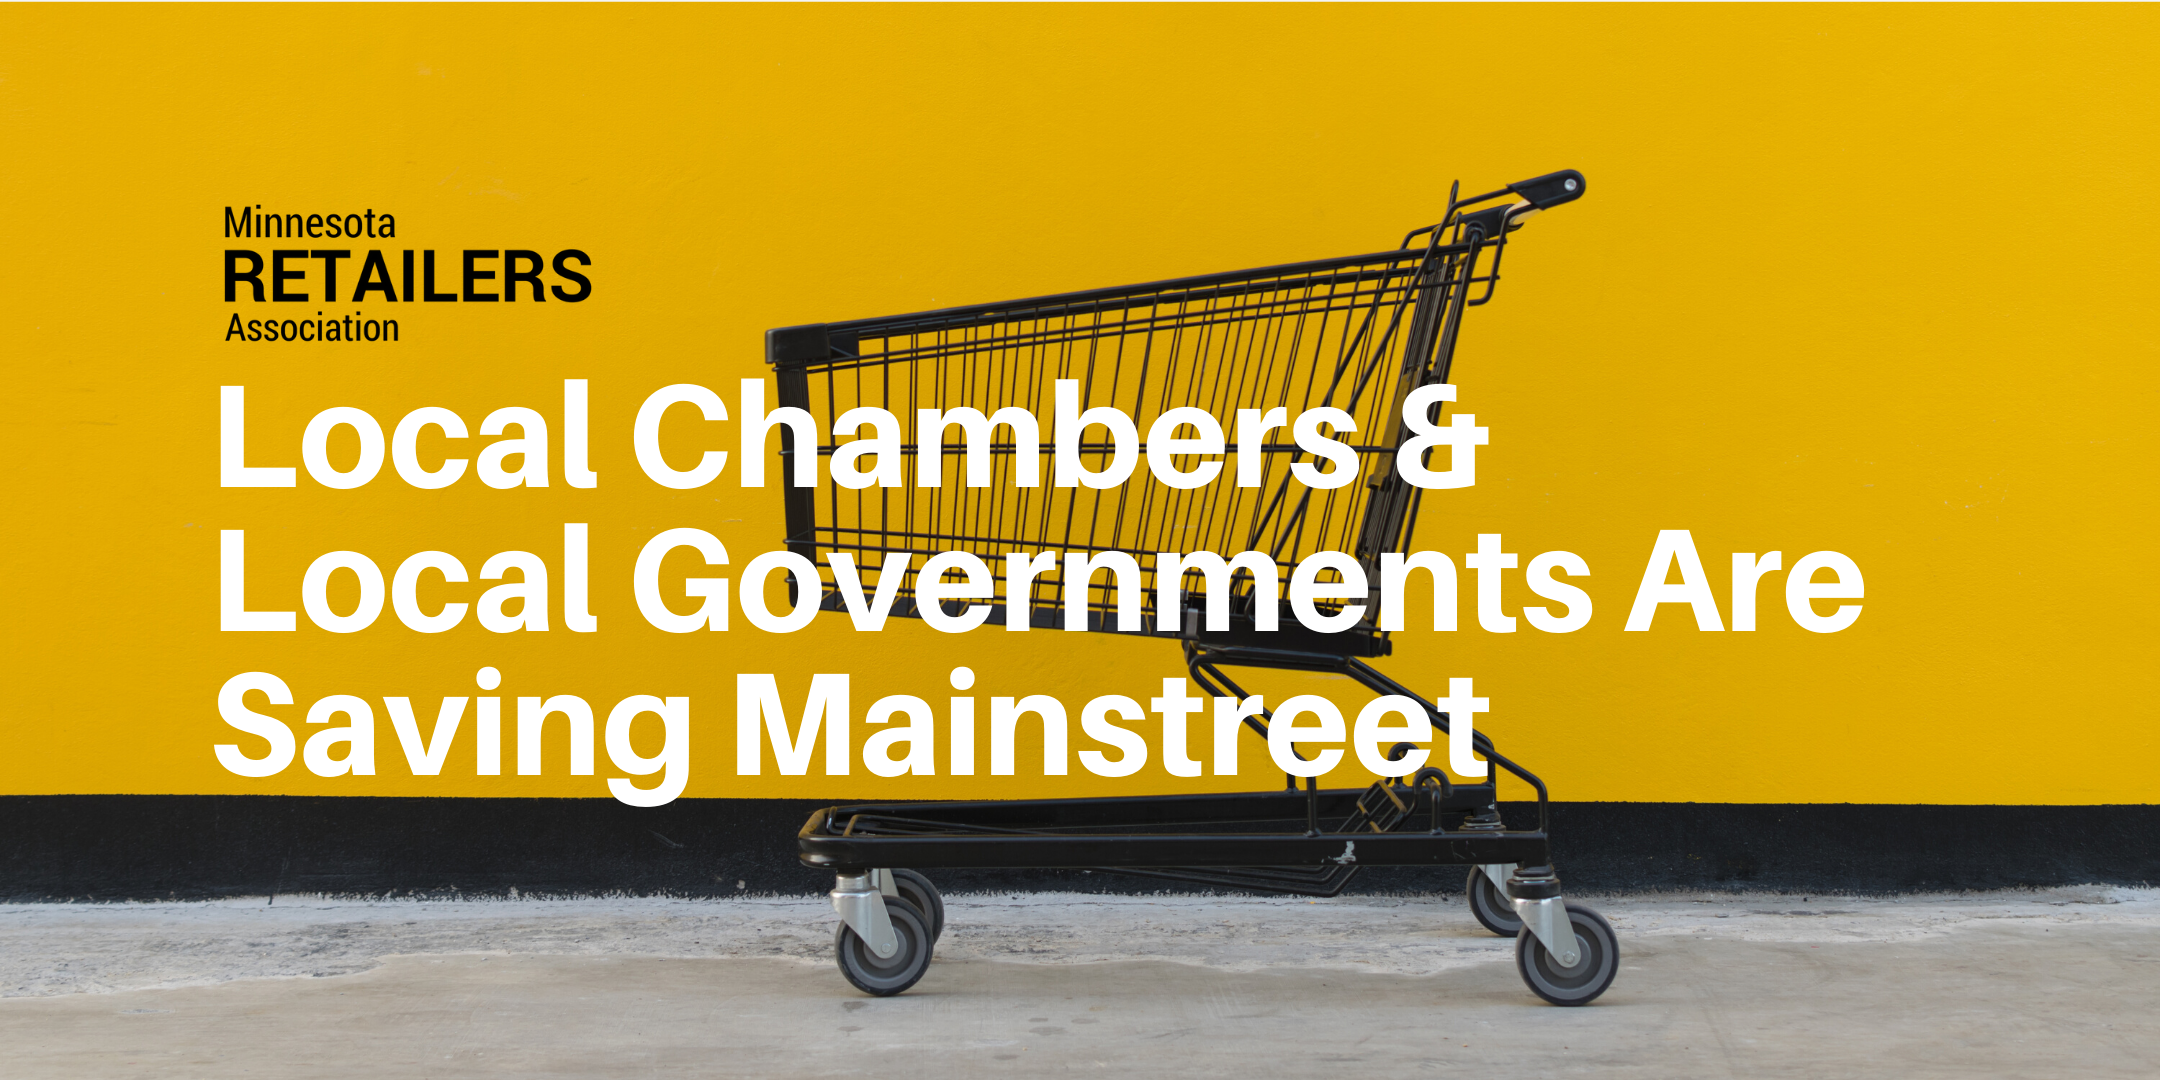 Local Chambers & Local Governments Are Leaders In Saving Mainstreet